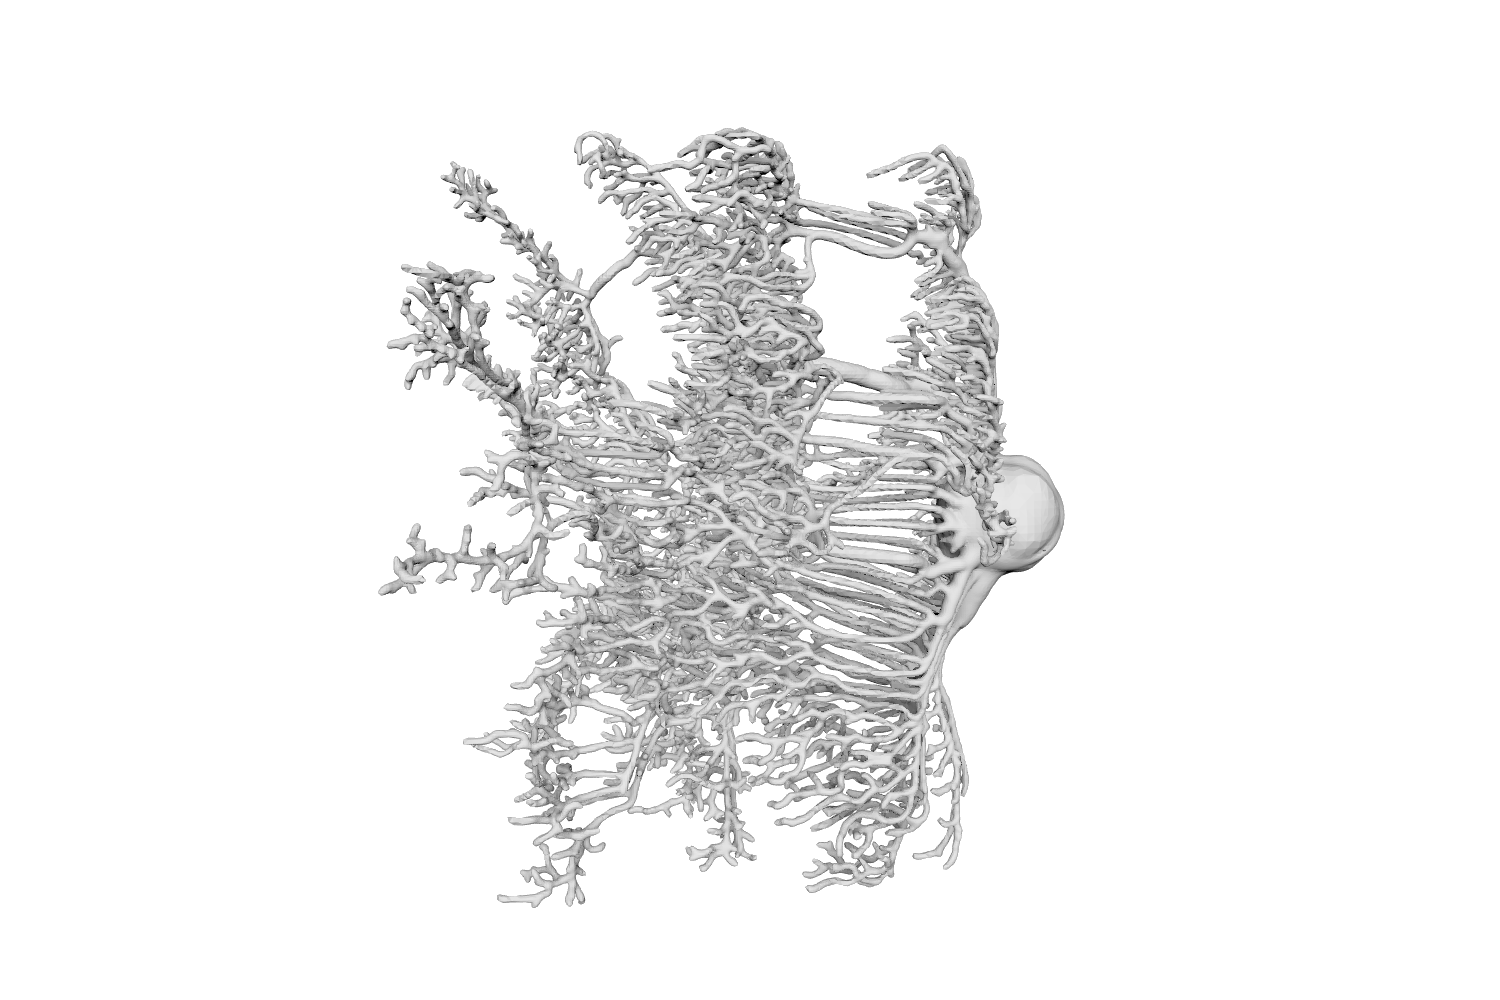 Growth drawing body. Kinetrope translab the motions